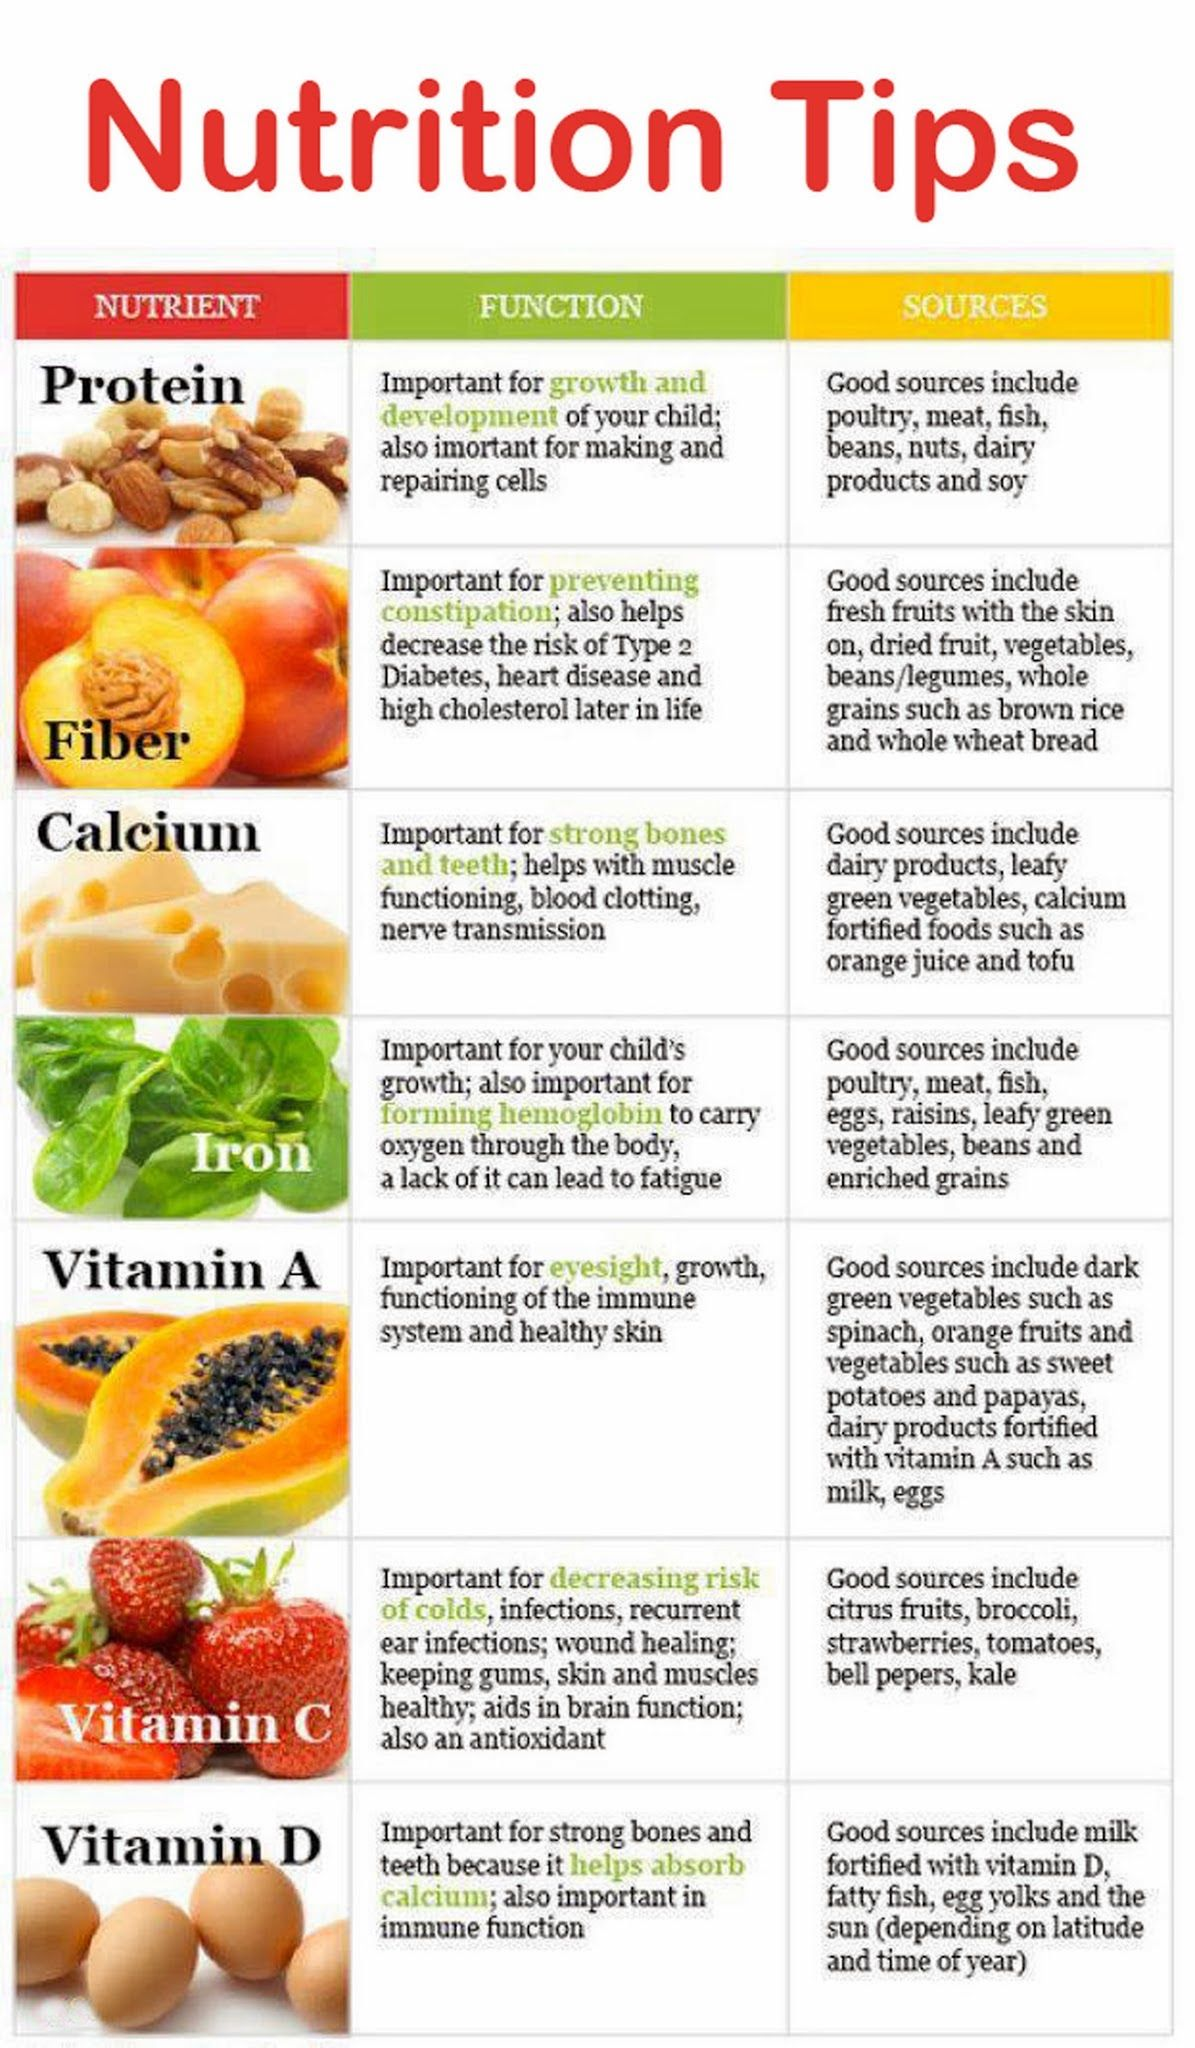 Nutrition Facts Healthy Eating, Diet And